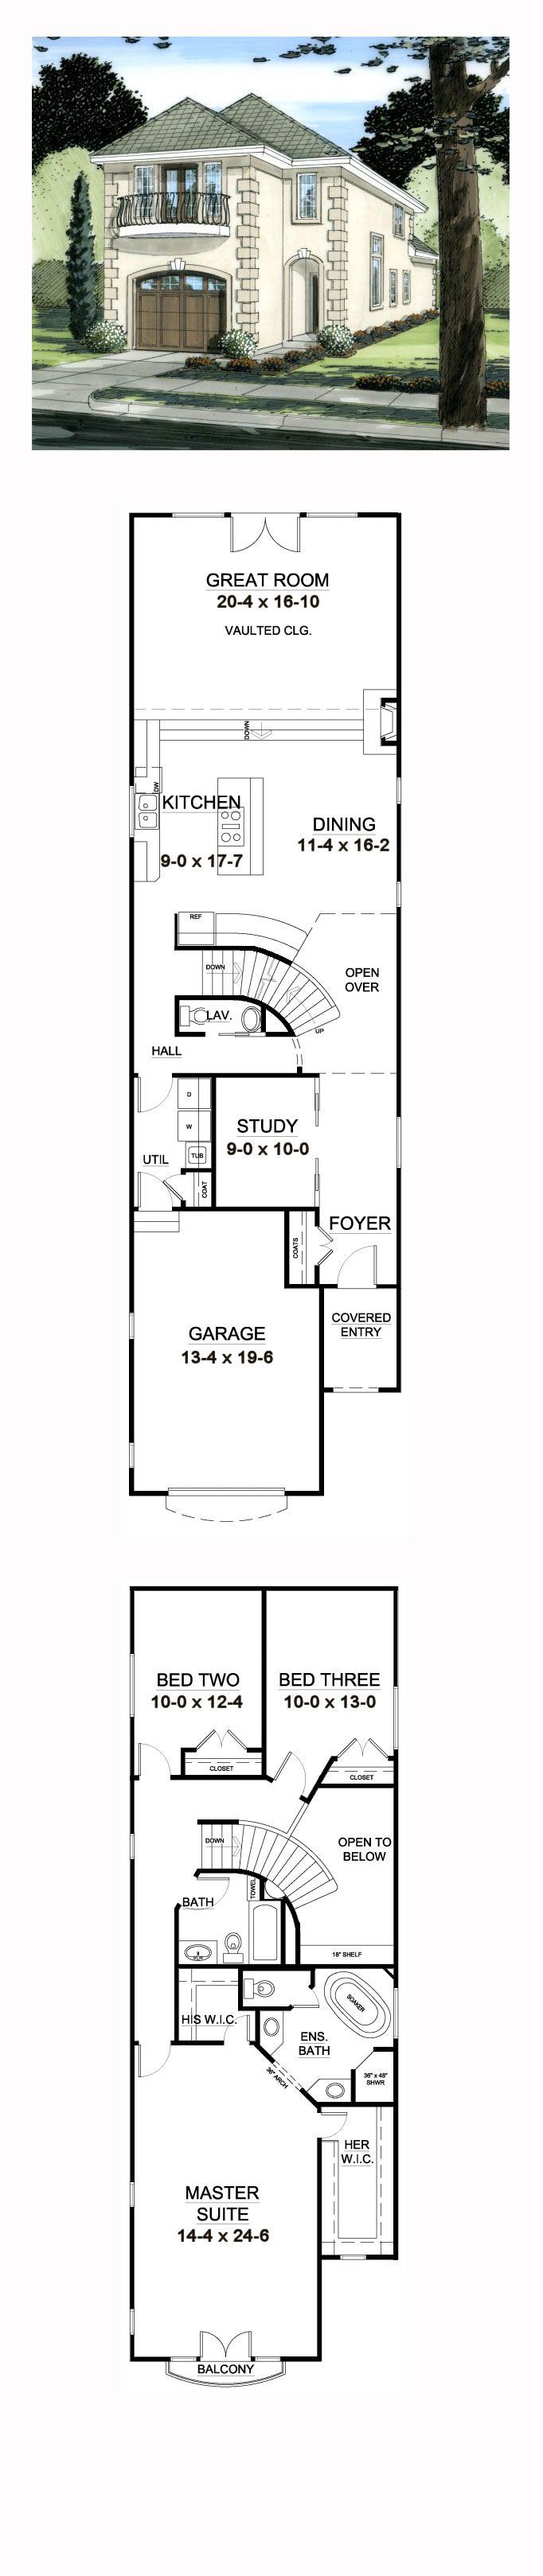 Florida house plan 99997 narrow lot house plans and bedrooms House floor plans narrow lot